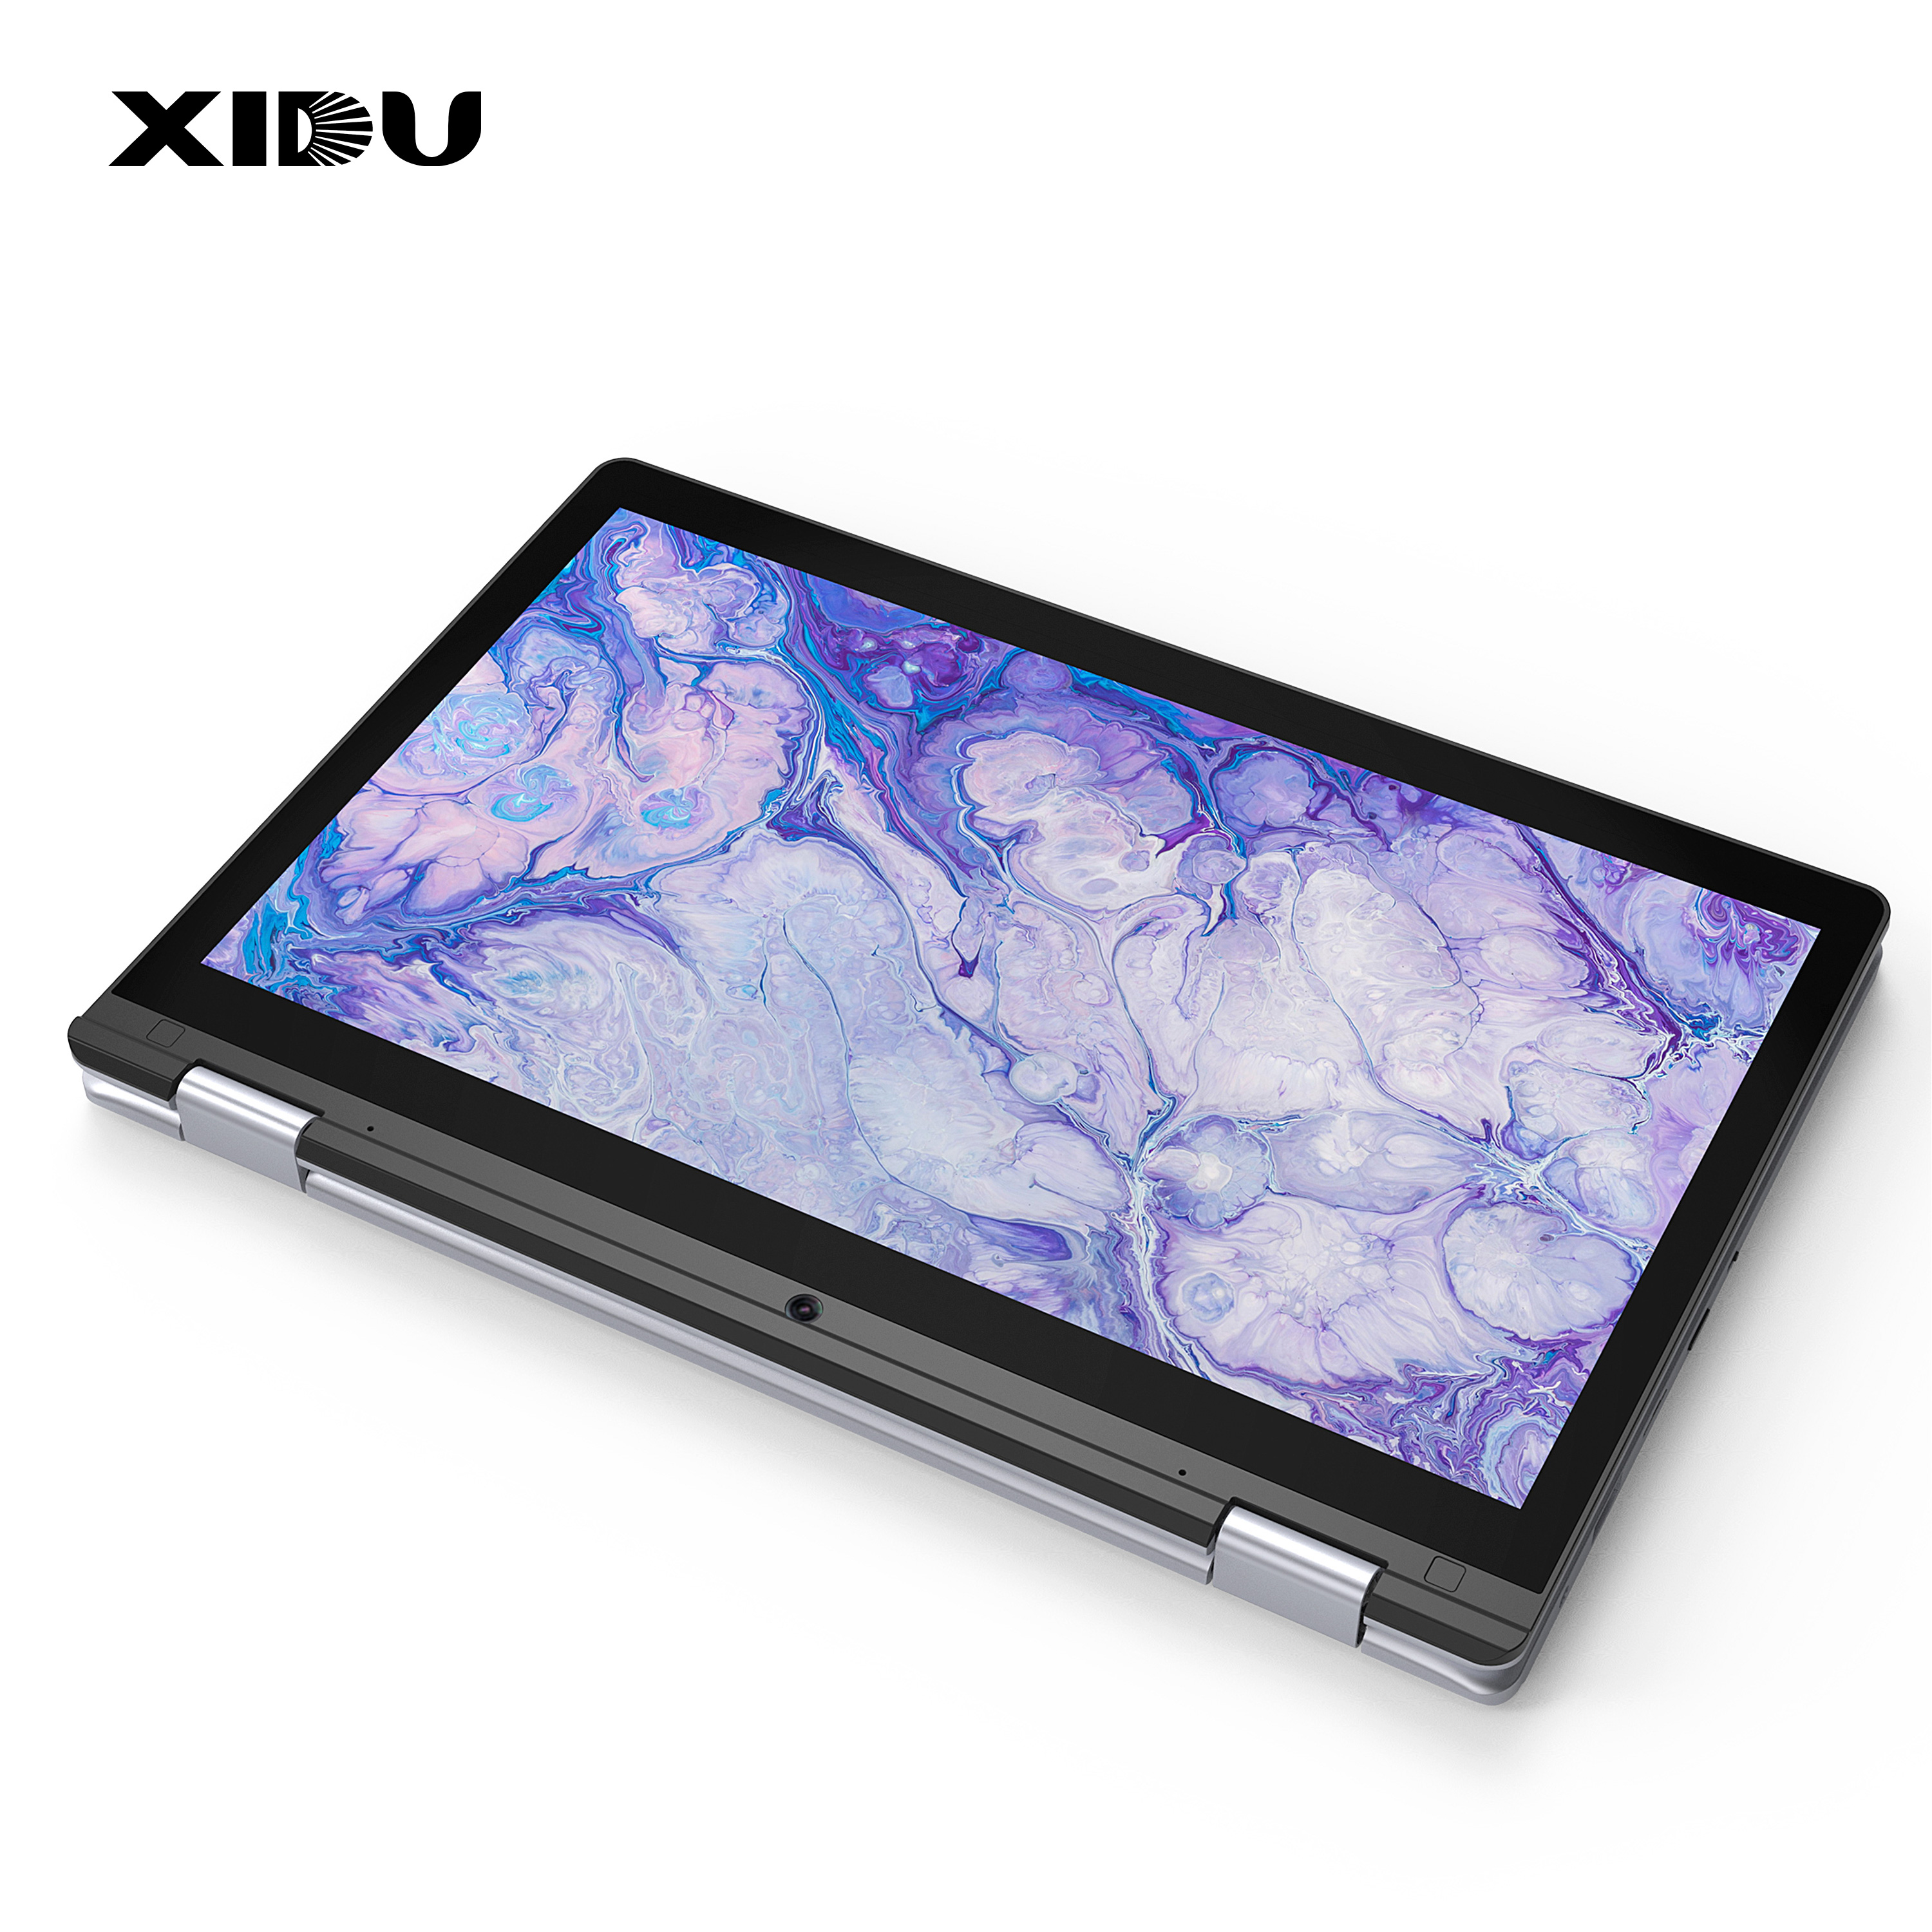 2019 XIDU Tablet 11.6 Inch Laptops Notebook With 4GB RAM 64GB ROM Intel Z8350 Quad Core Computer Ultrabook